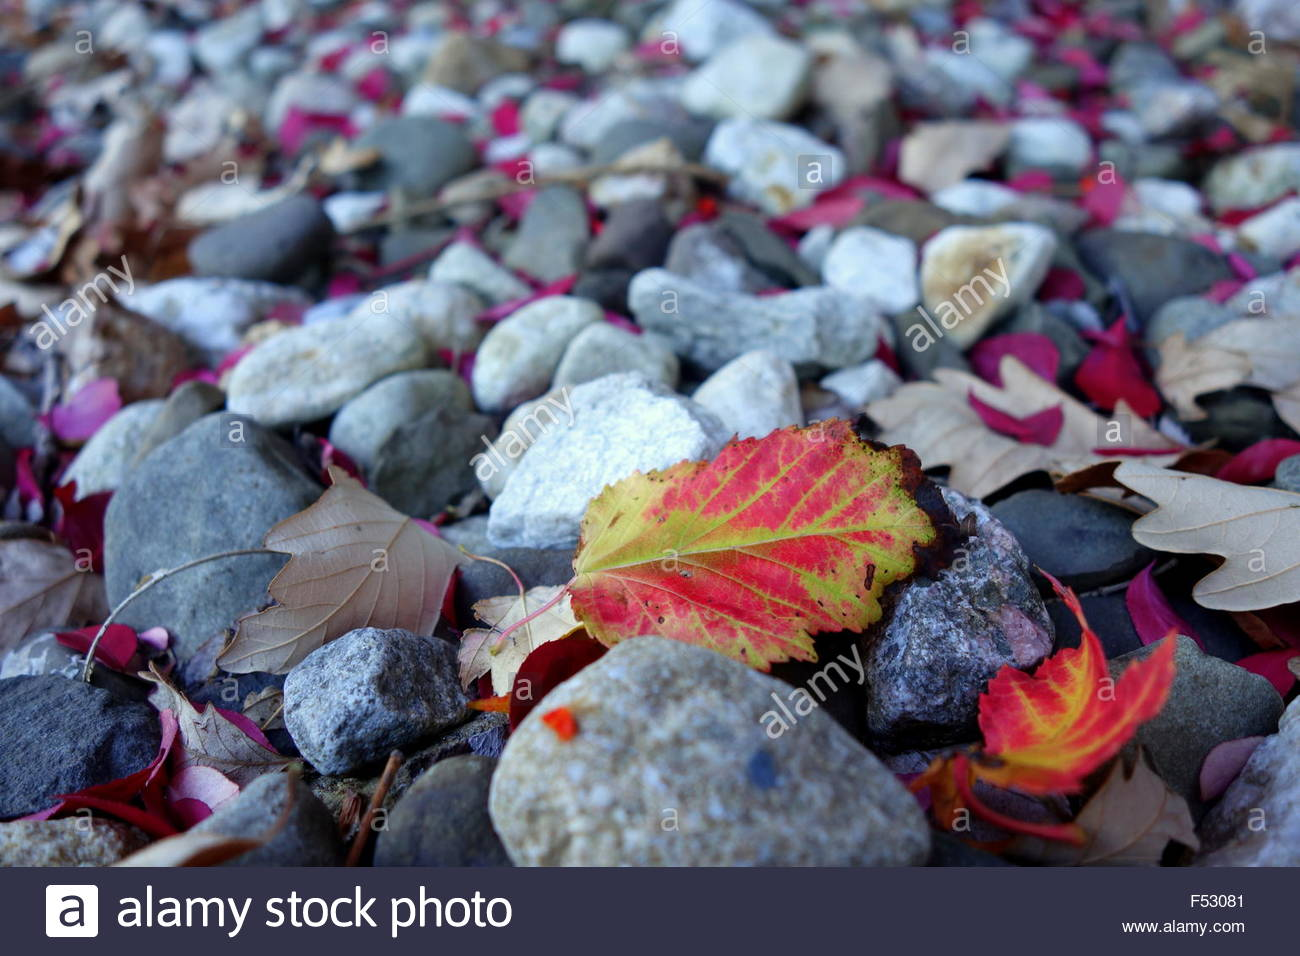 Colorful fall foliage on top of limestones - Stock Image